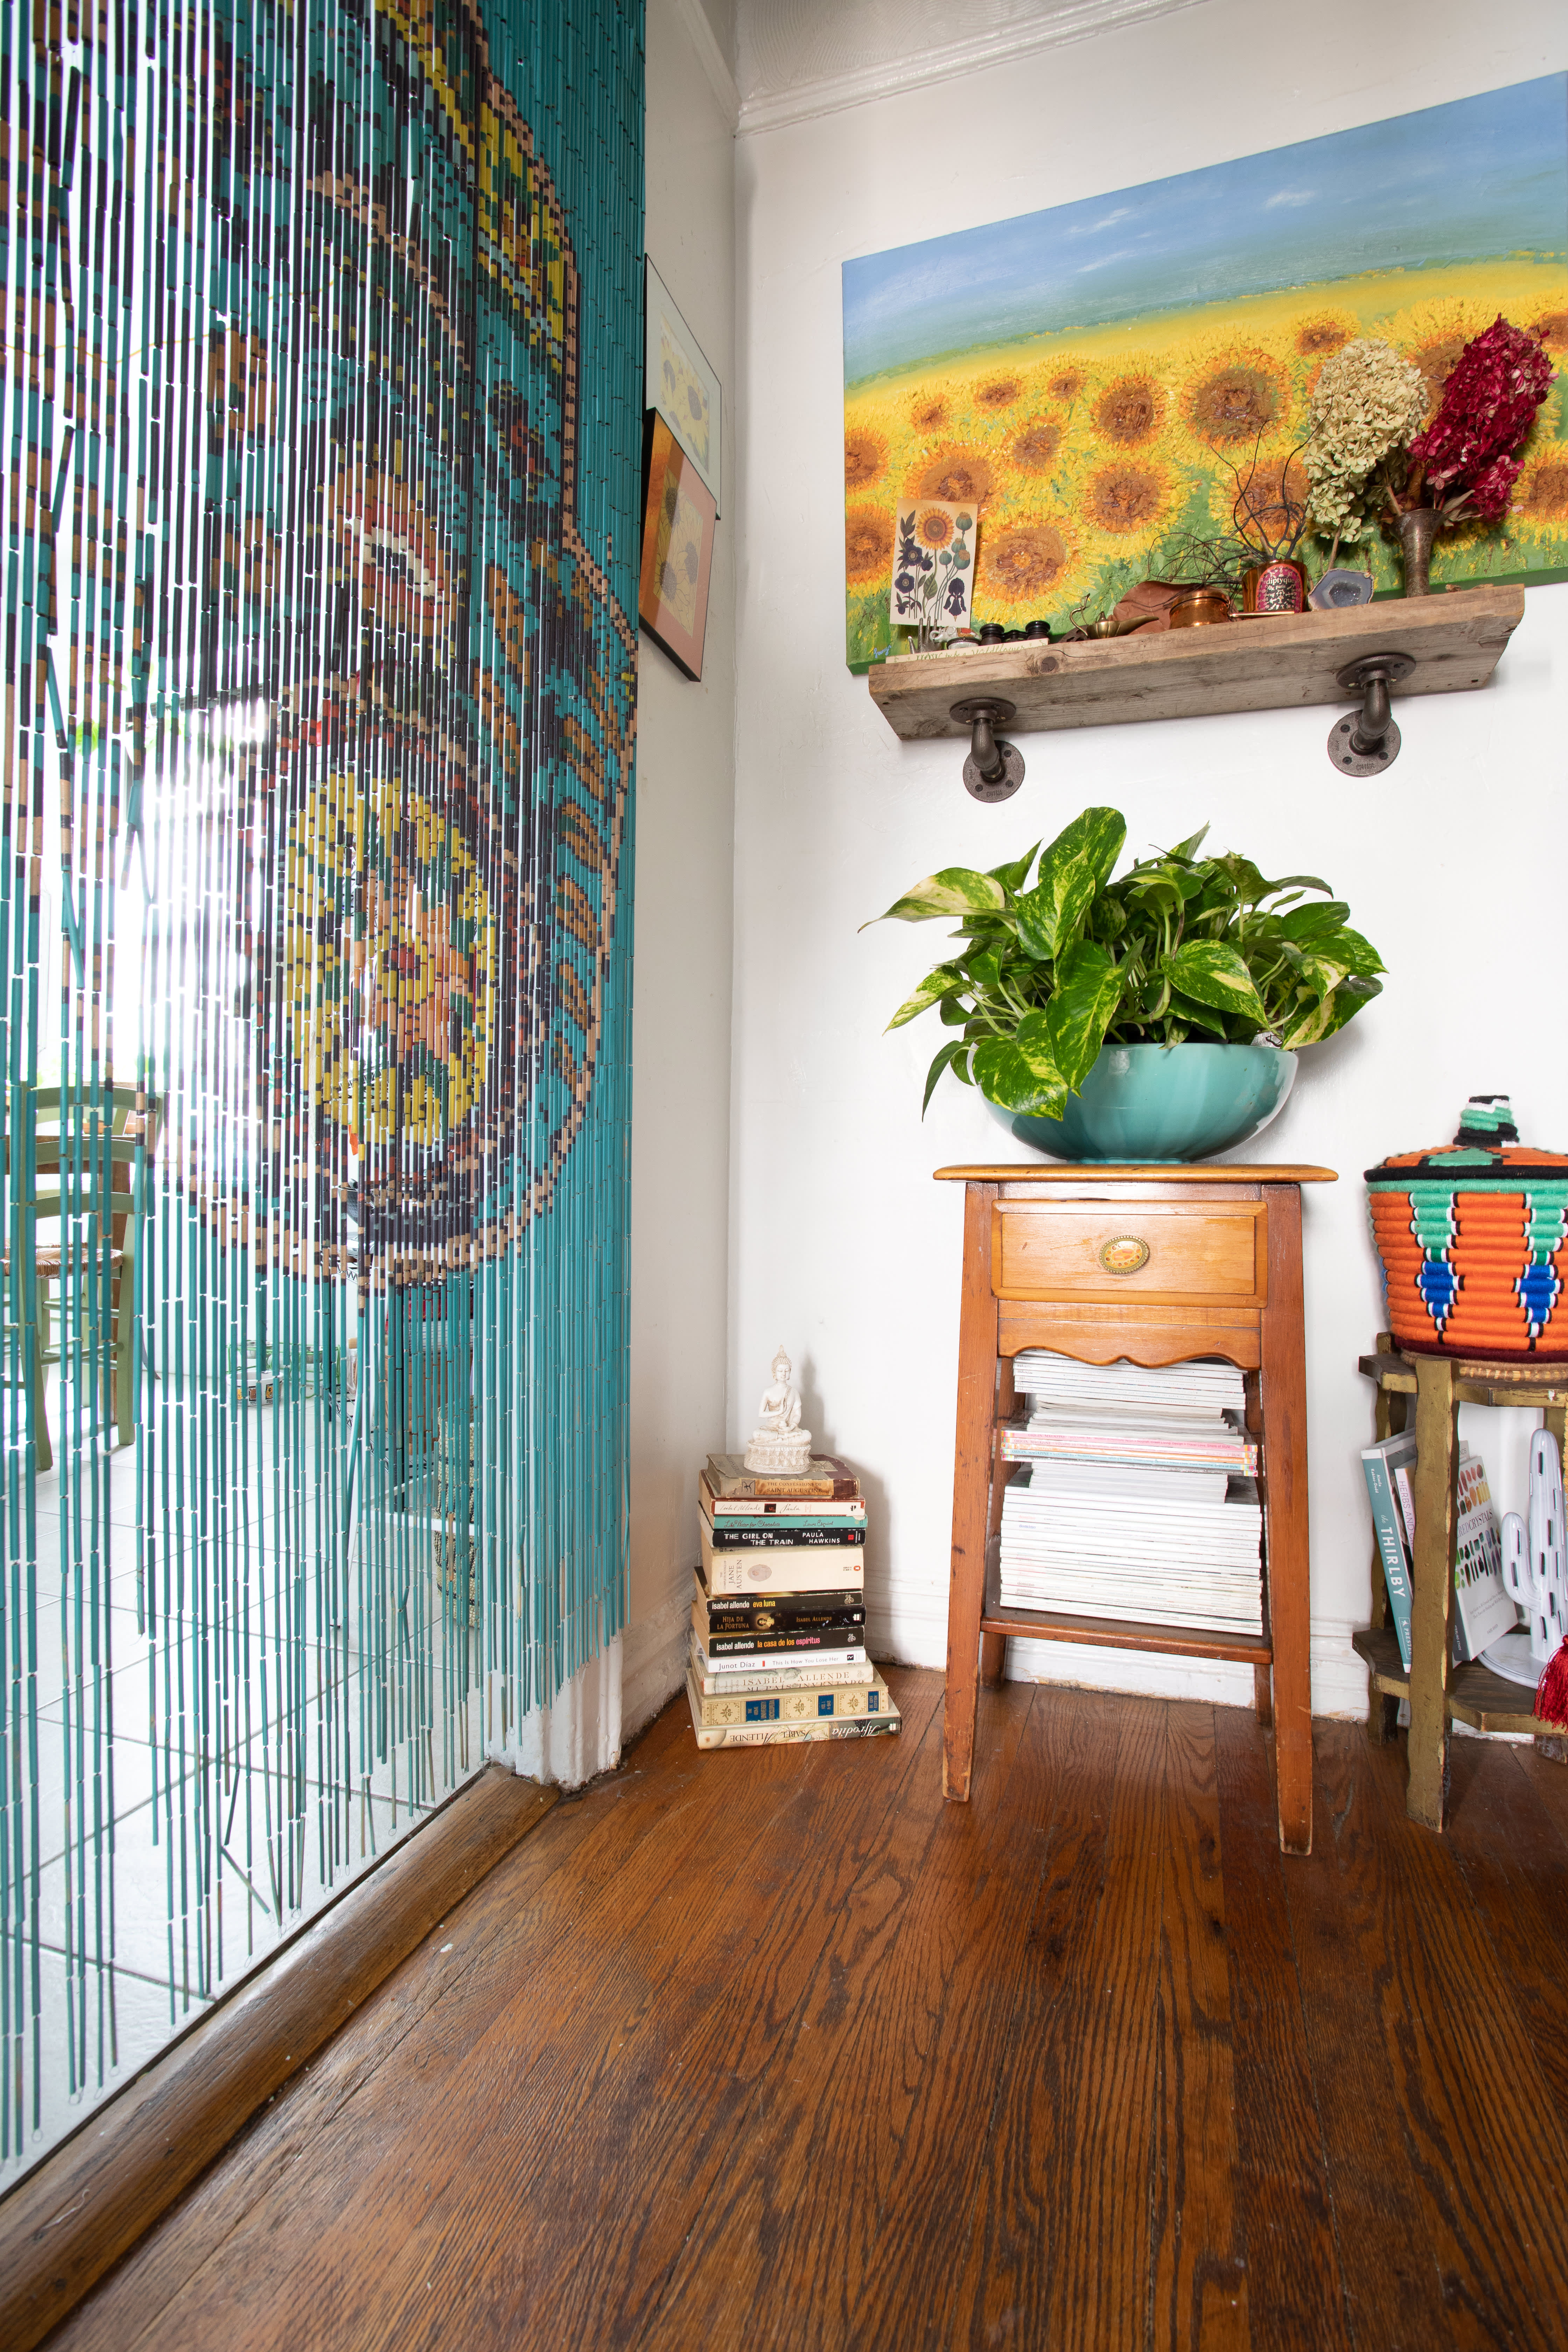 Maximalist Bohemian Eclectic Plant-Filled Home Photos ...